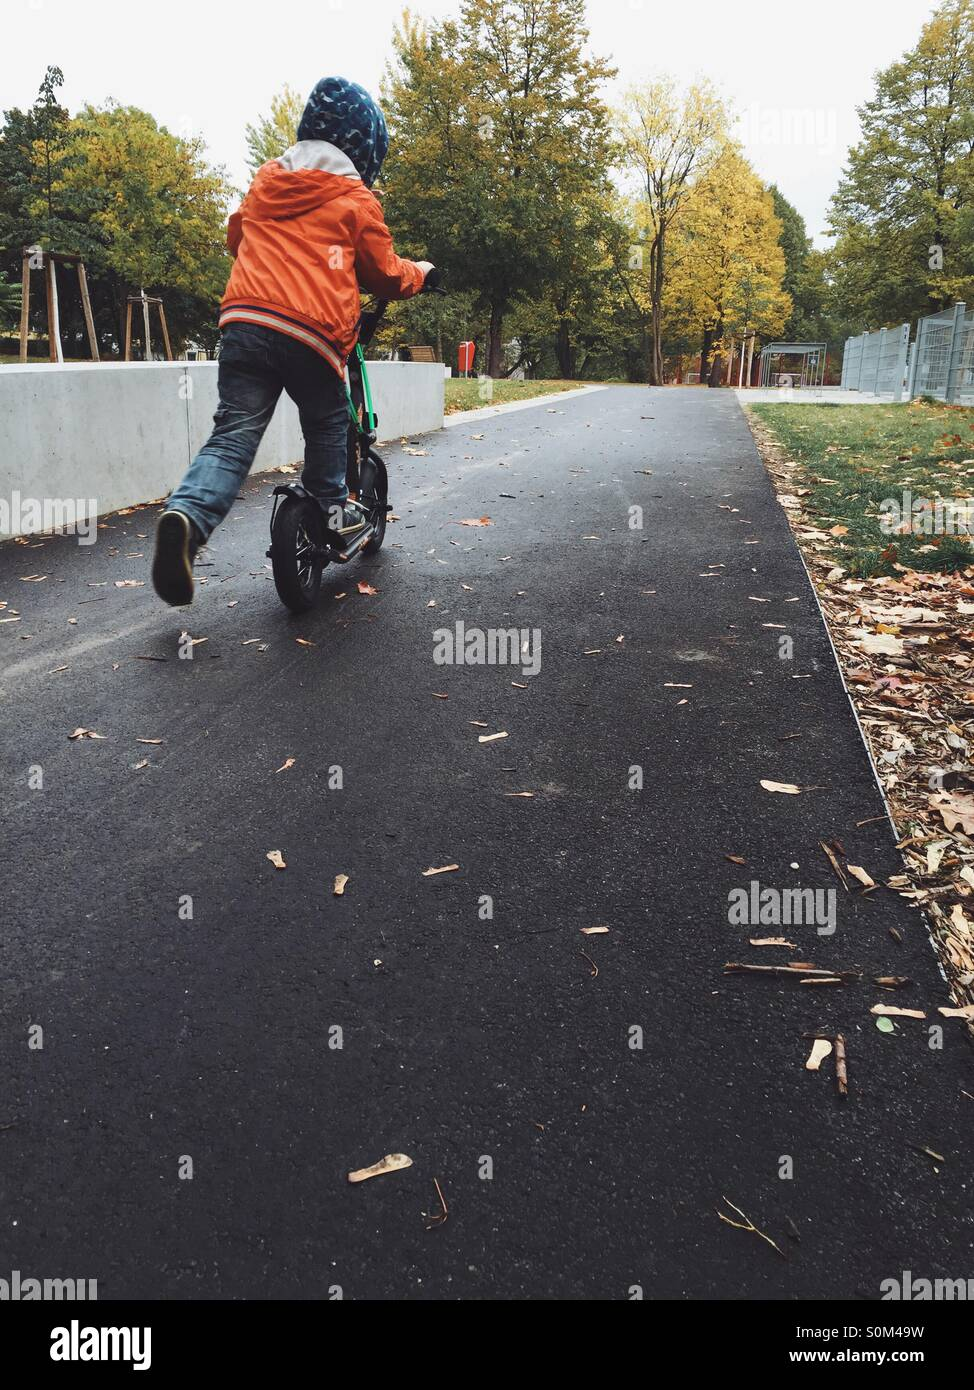 Boy riding a scooter in a park in rainy autumn weather - Stock Image